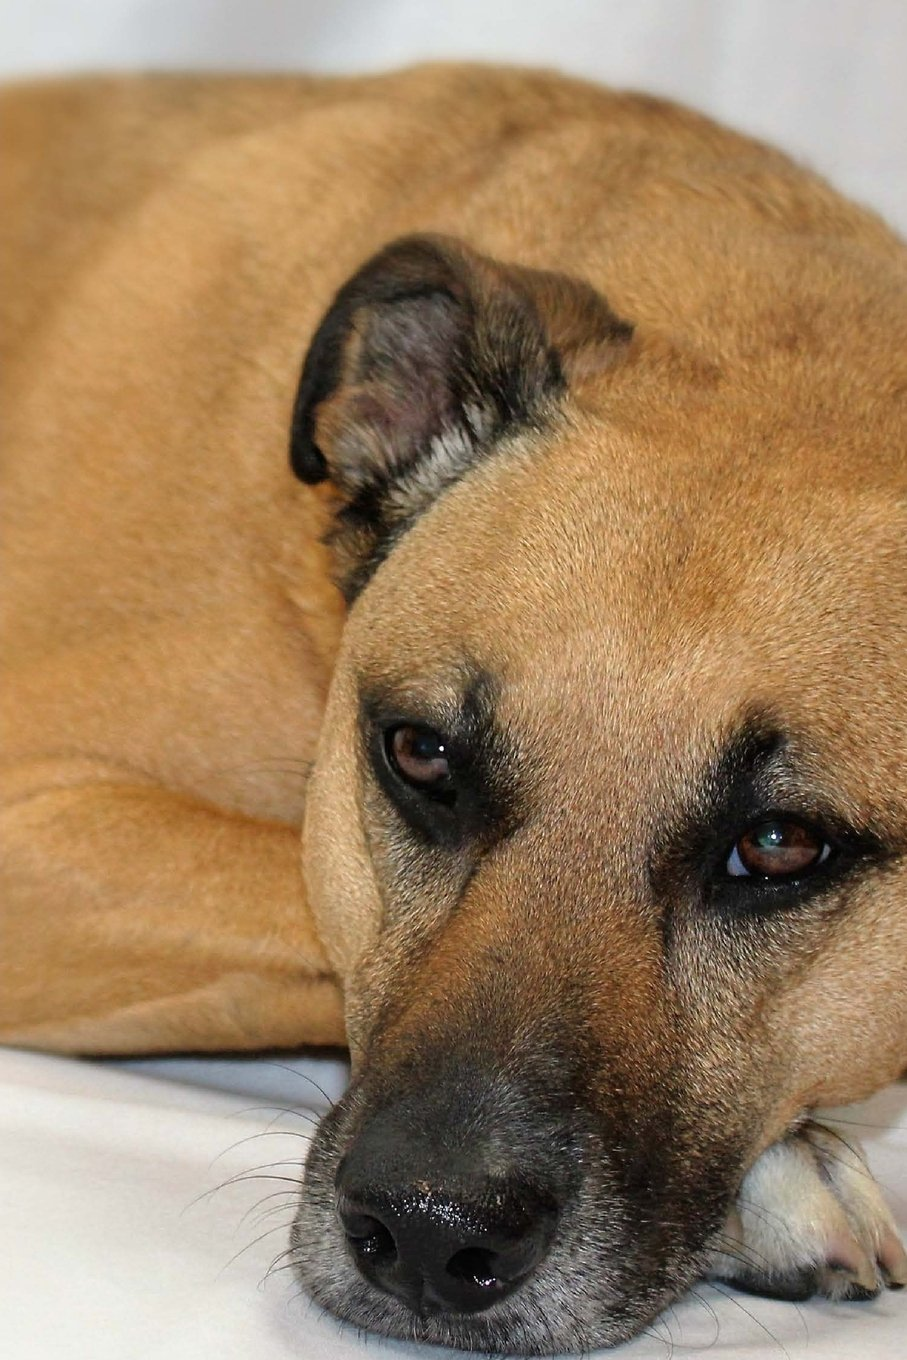 Black Mouth Cur Dog Laying Down Journal: Take Notes, Write Down Memories in this 150 Page Lined Journal pdf epub